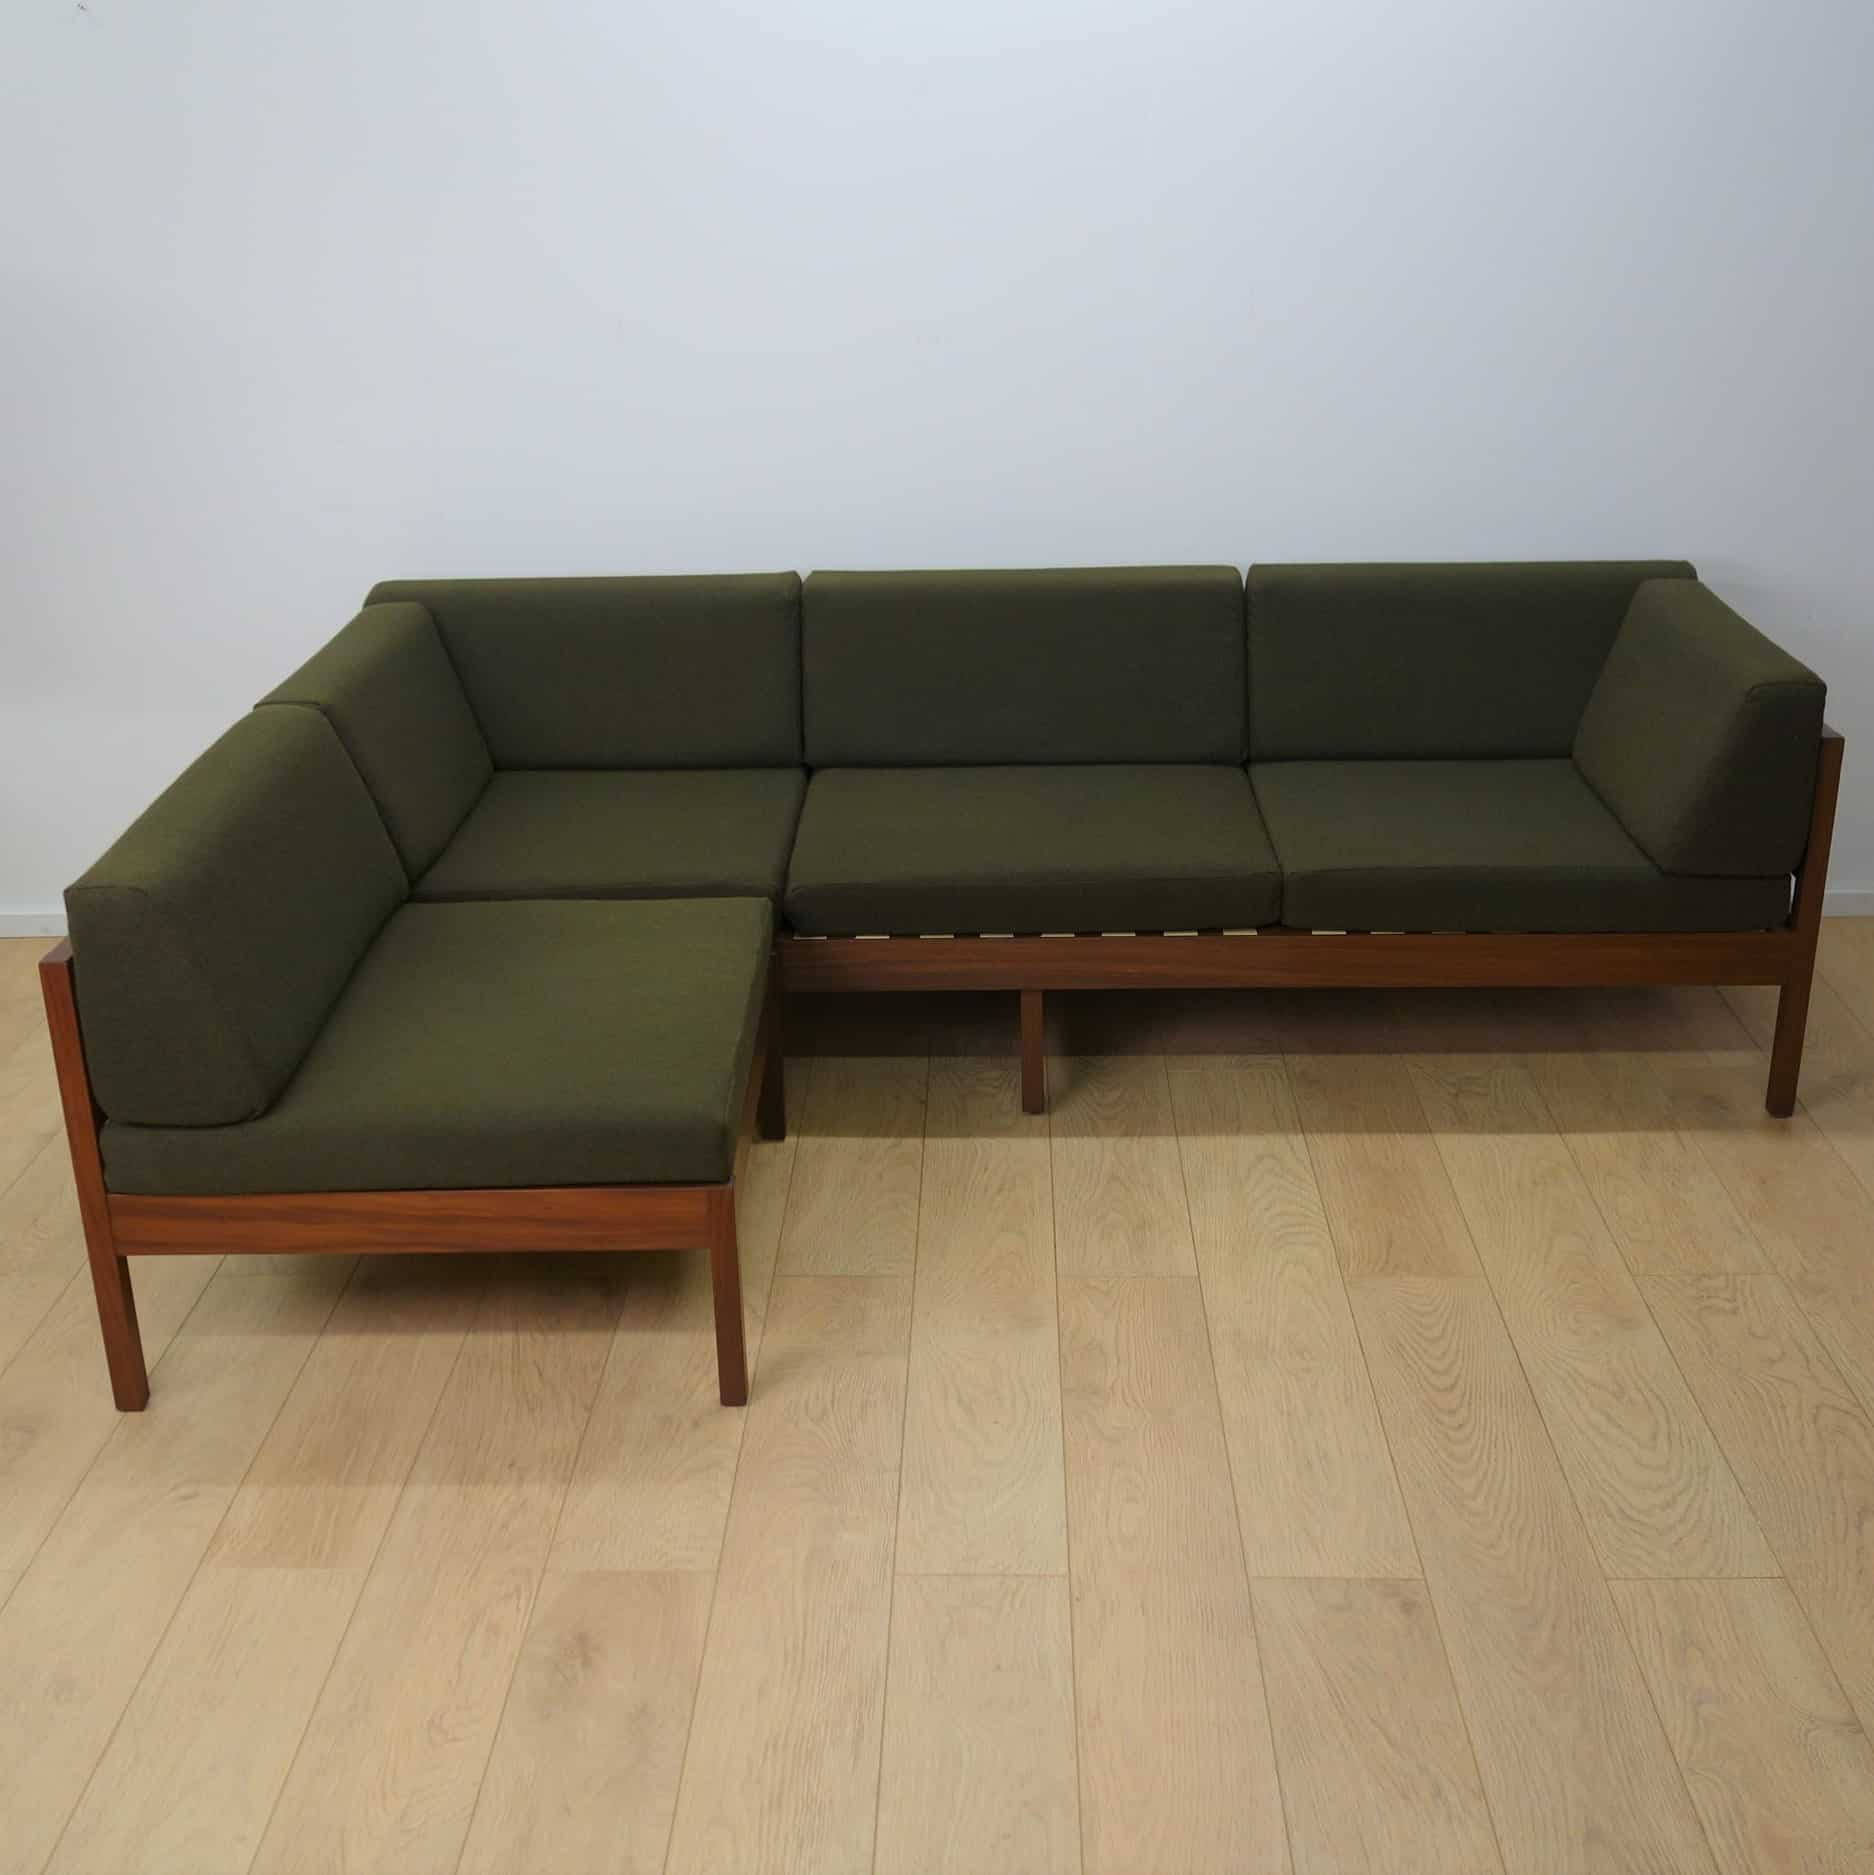 3 seater sofa & 2 chairs by Guy Rogers